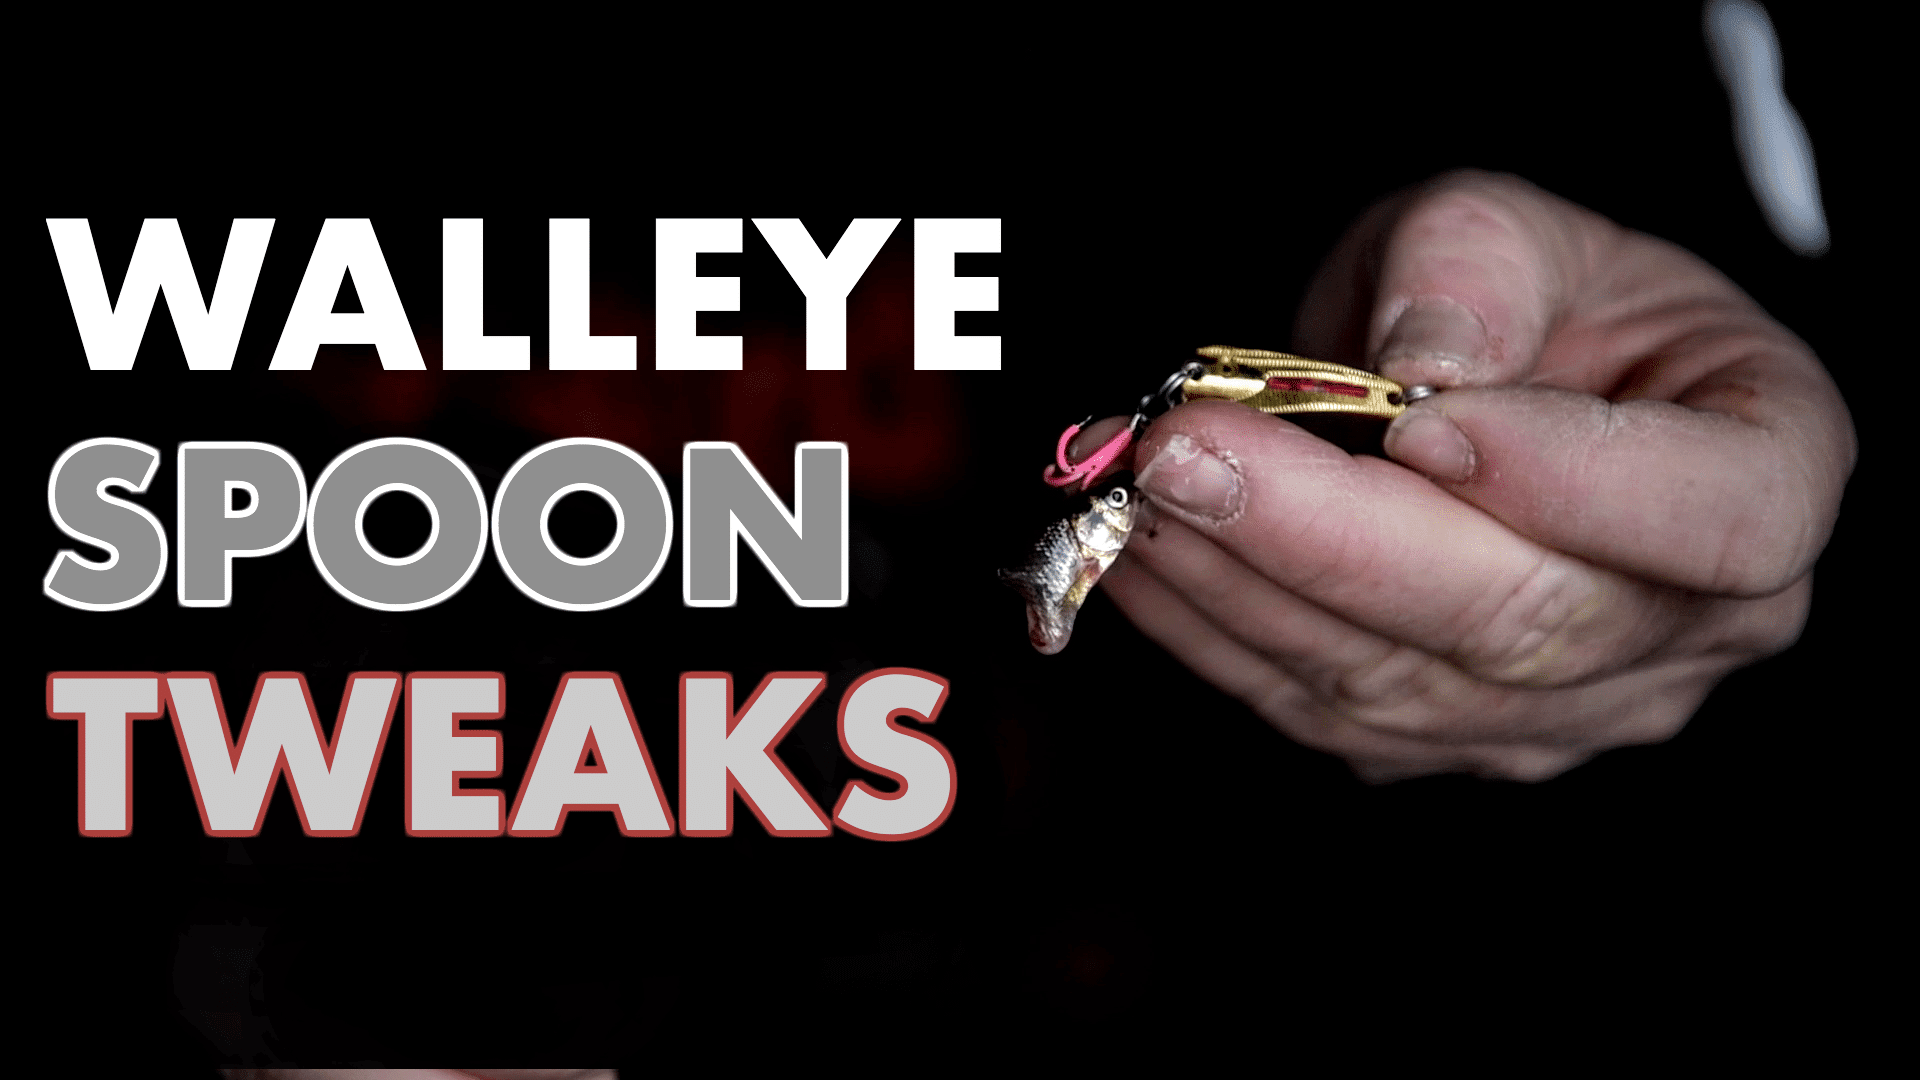 Walleye Spoon Tips, Tweaks, And Strategies